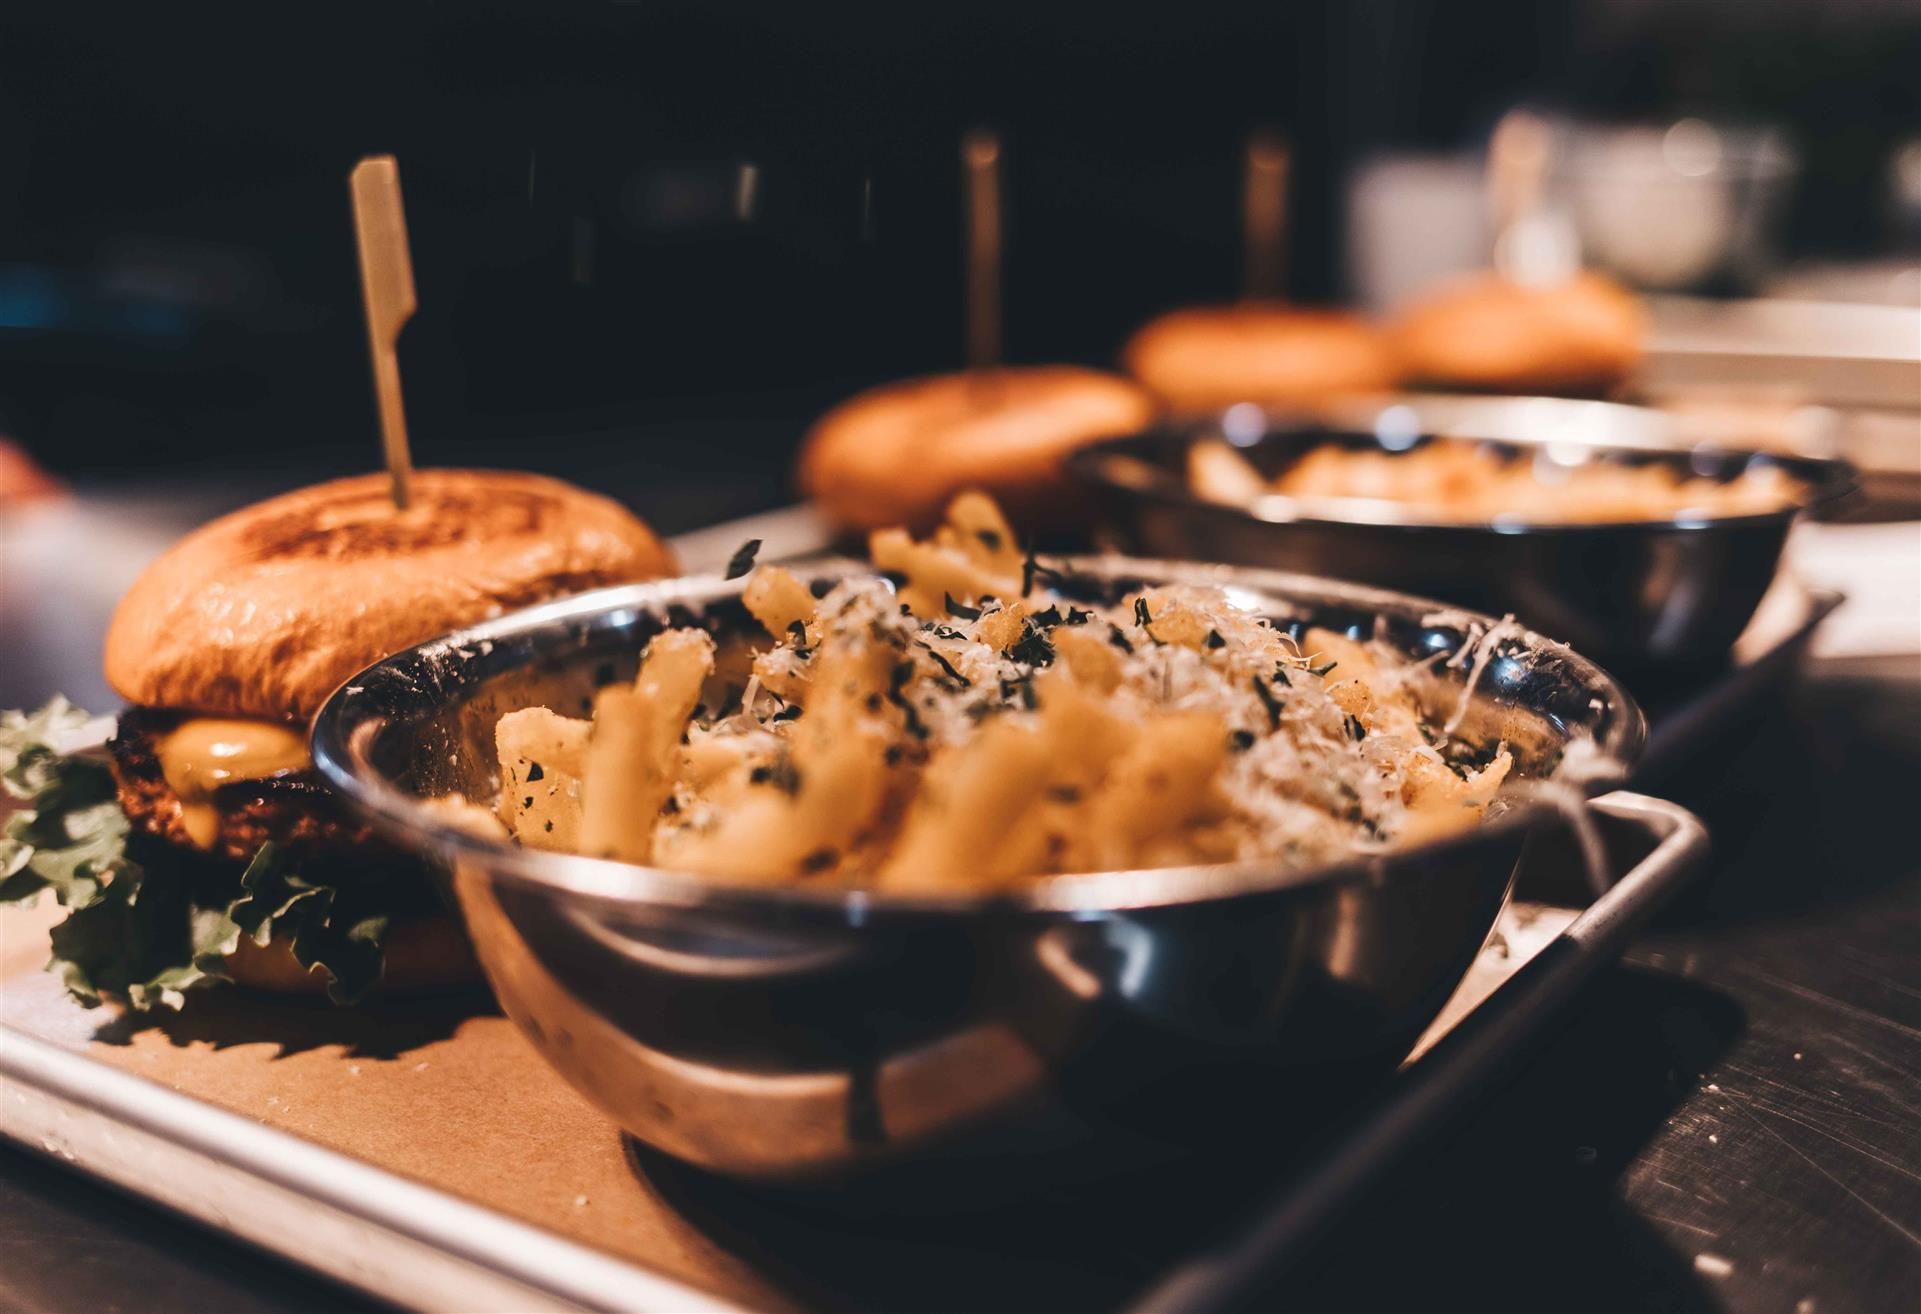 bowls of truffle fries served on platters with specialty burgers